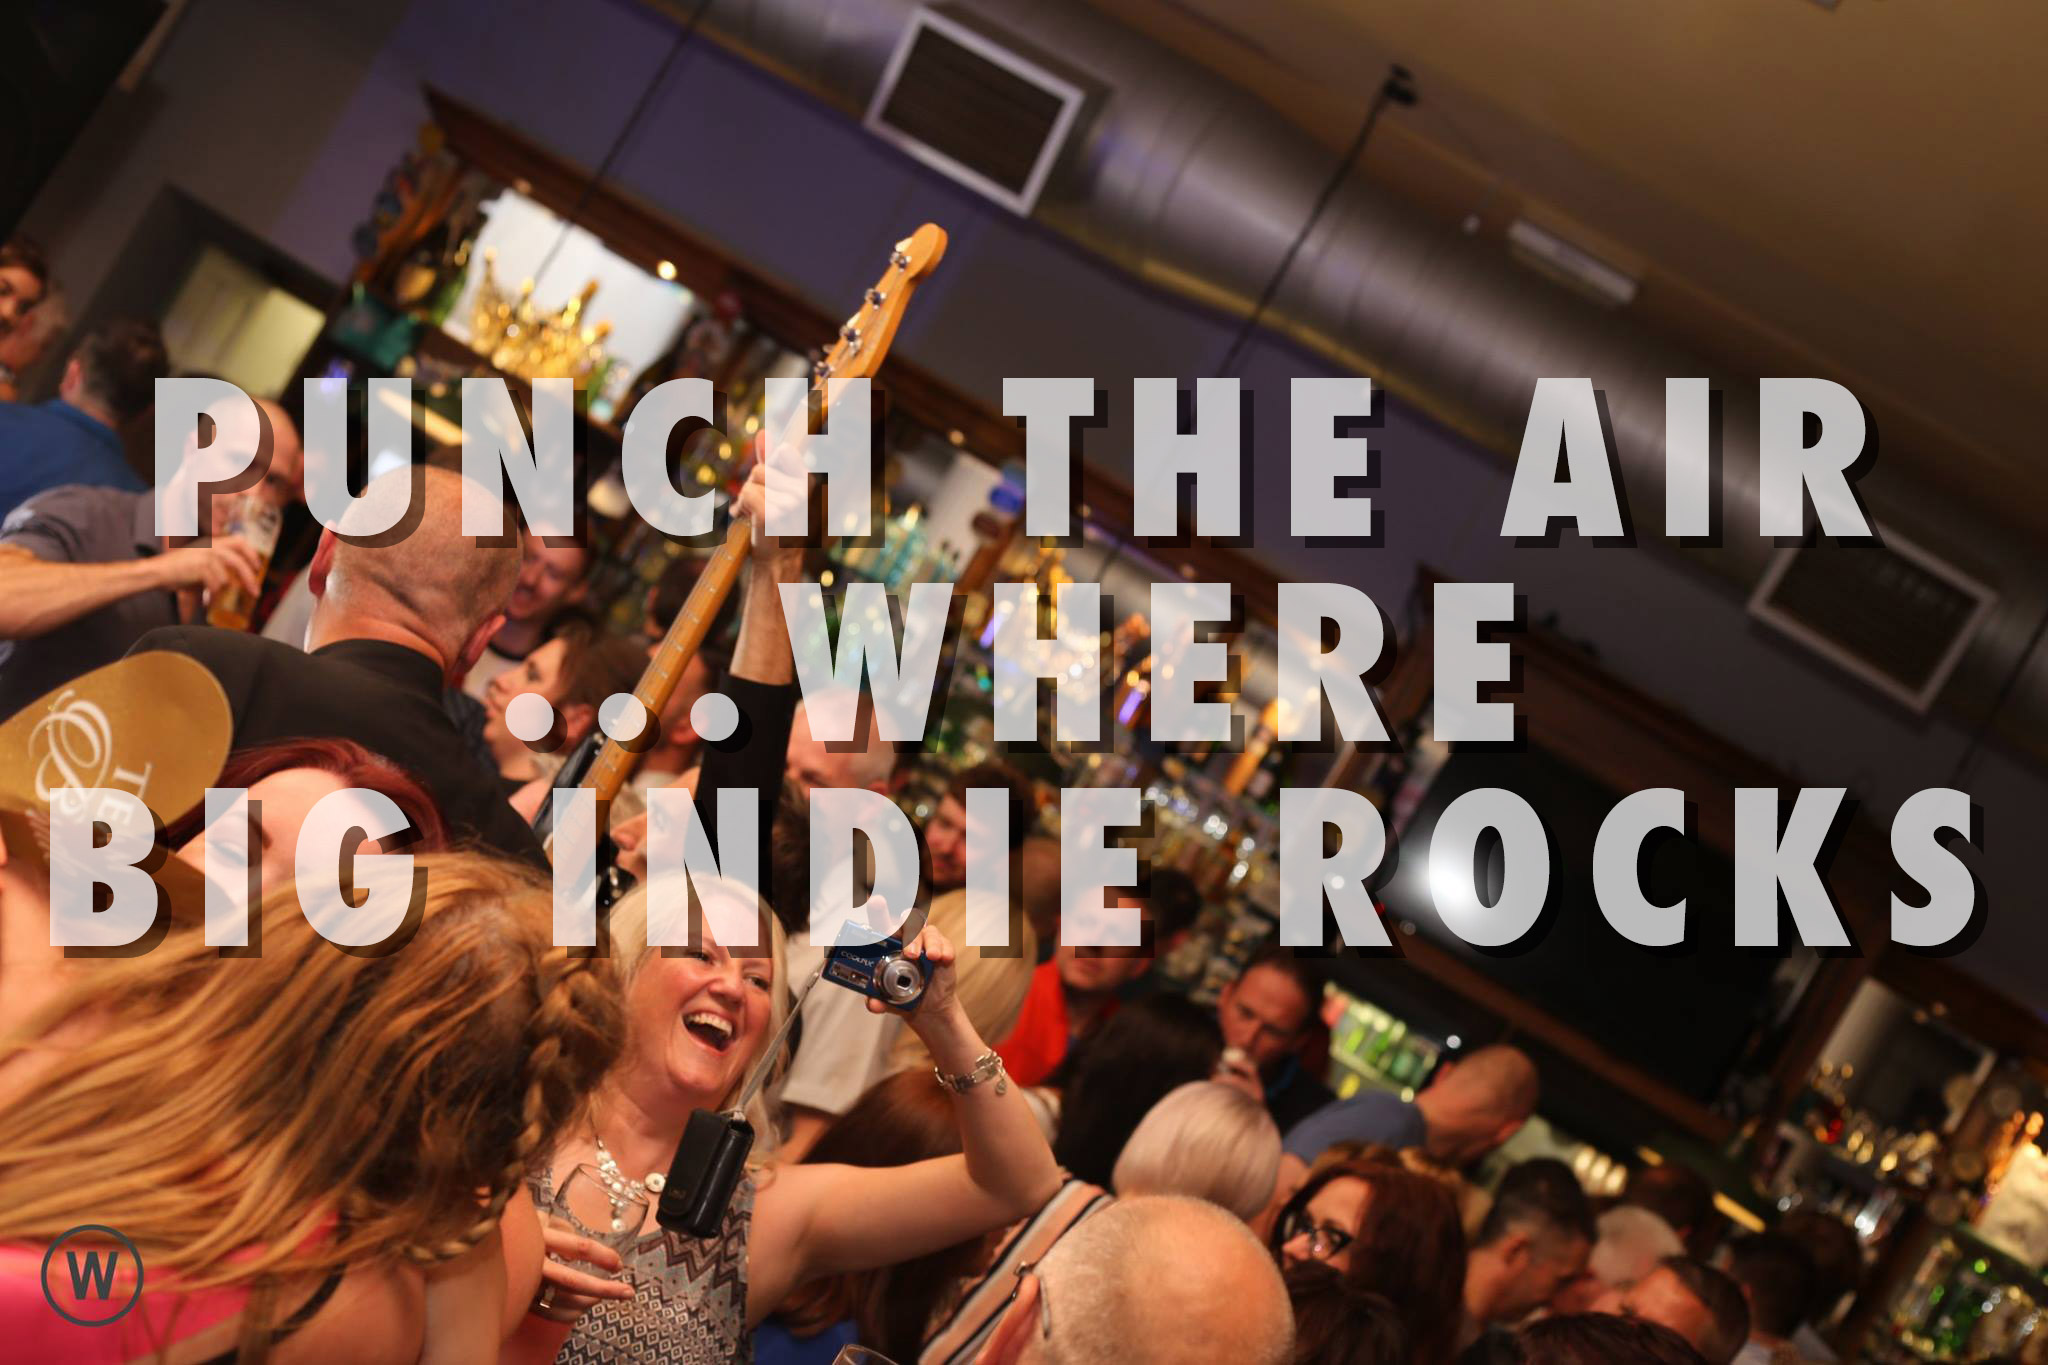 Where Big Indie Rocks